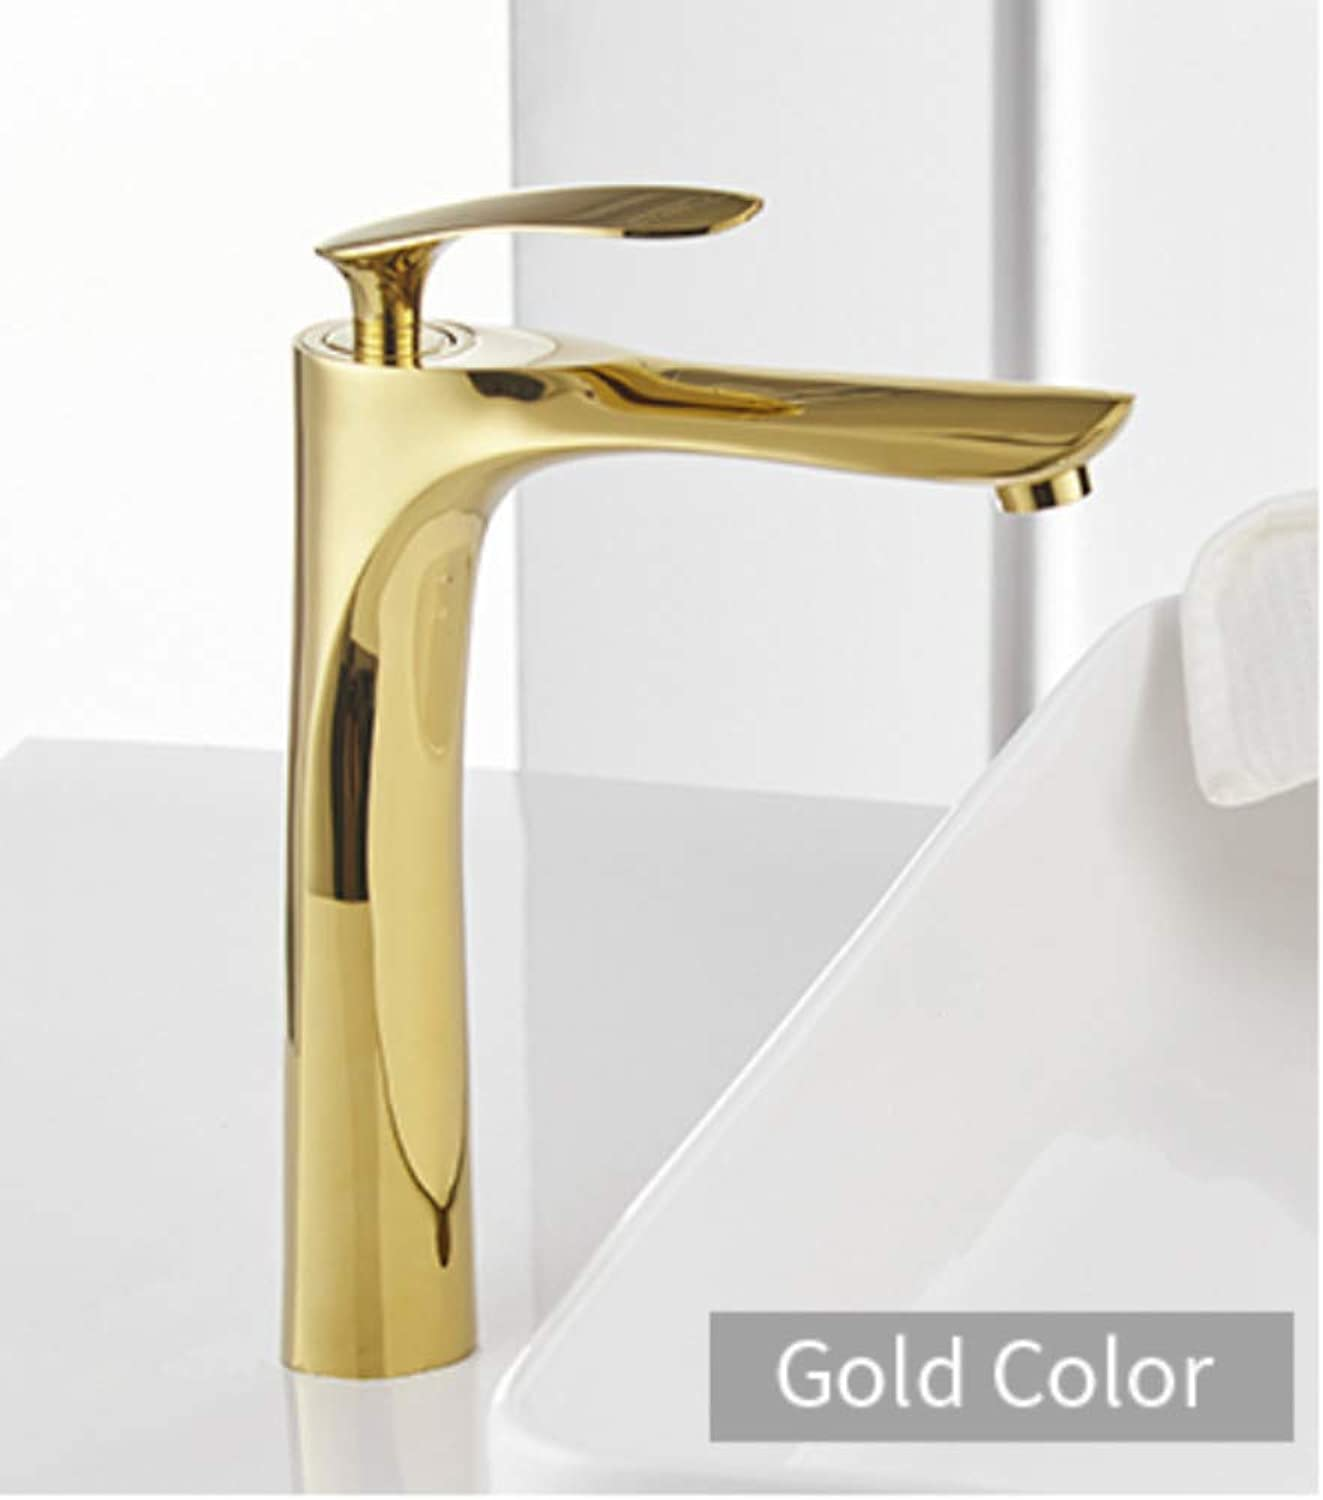 Makeyong Basin Faucets White color Basin Mixer Tap Bathroom Faucet Hot and Cold Chrome Finish Brass Toilet Sink Water Crane gold